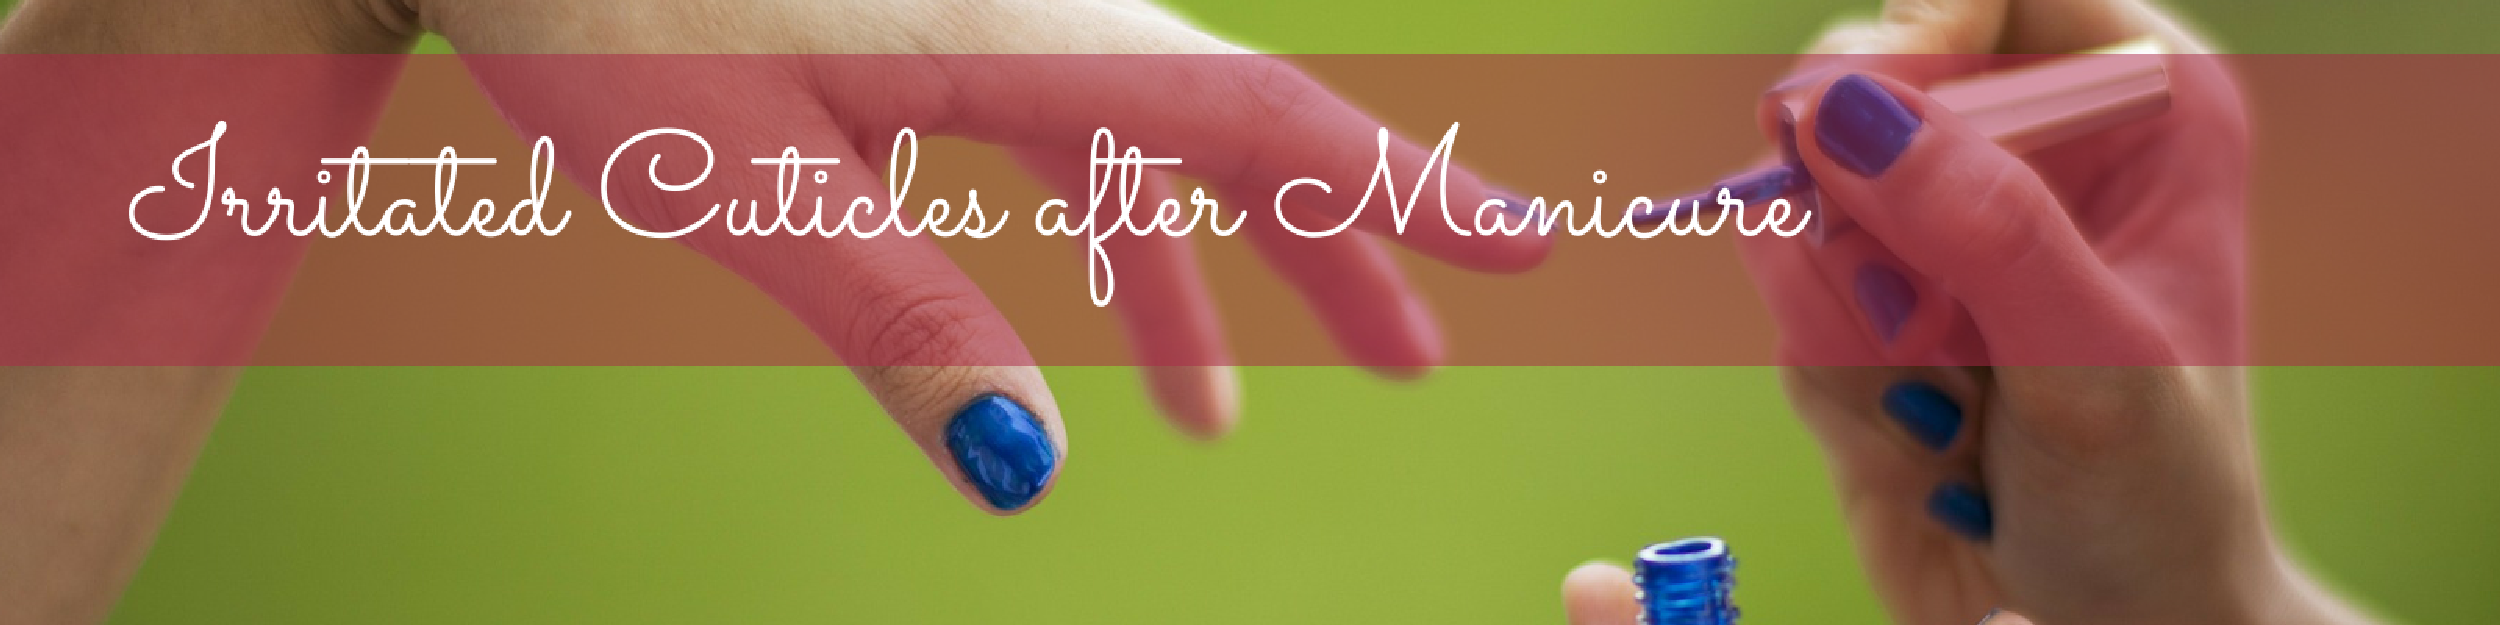 Irritated Cuticles after Manicure